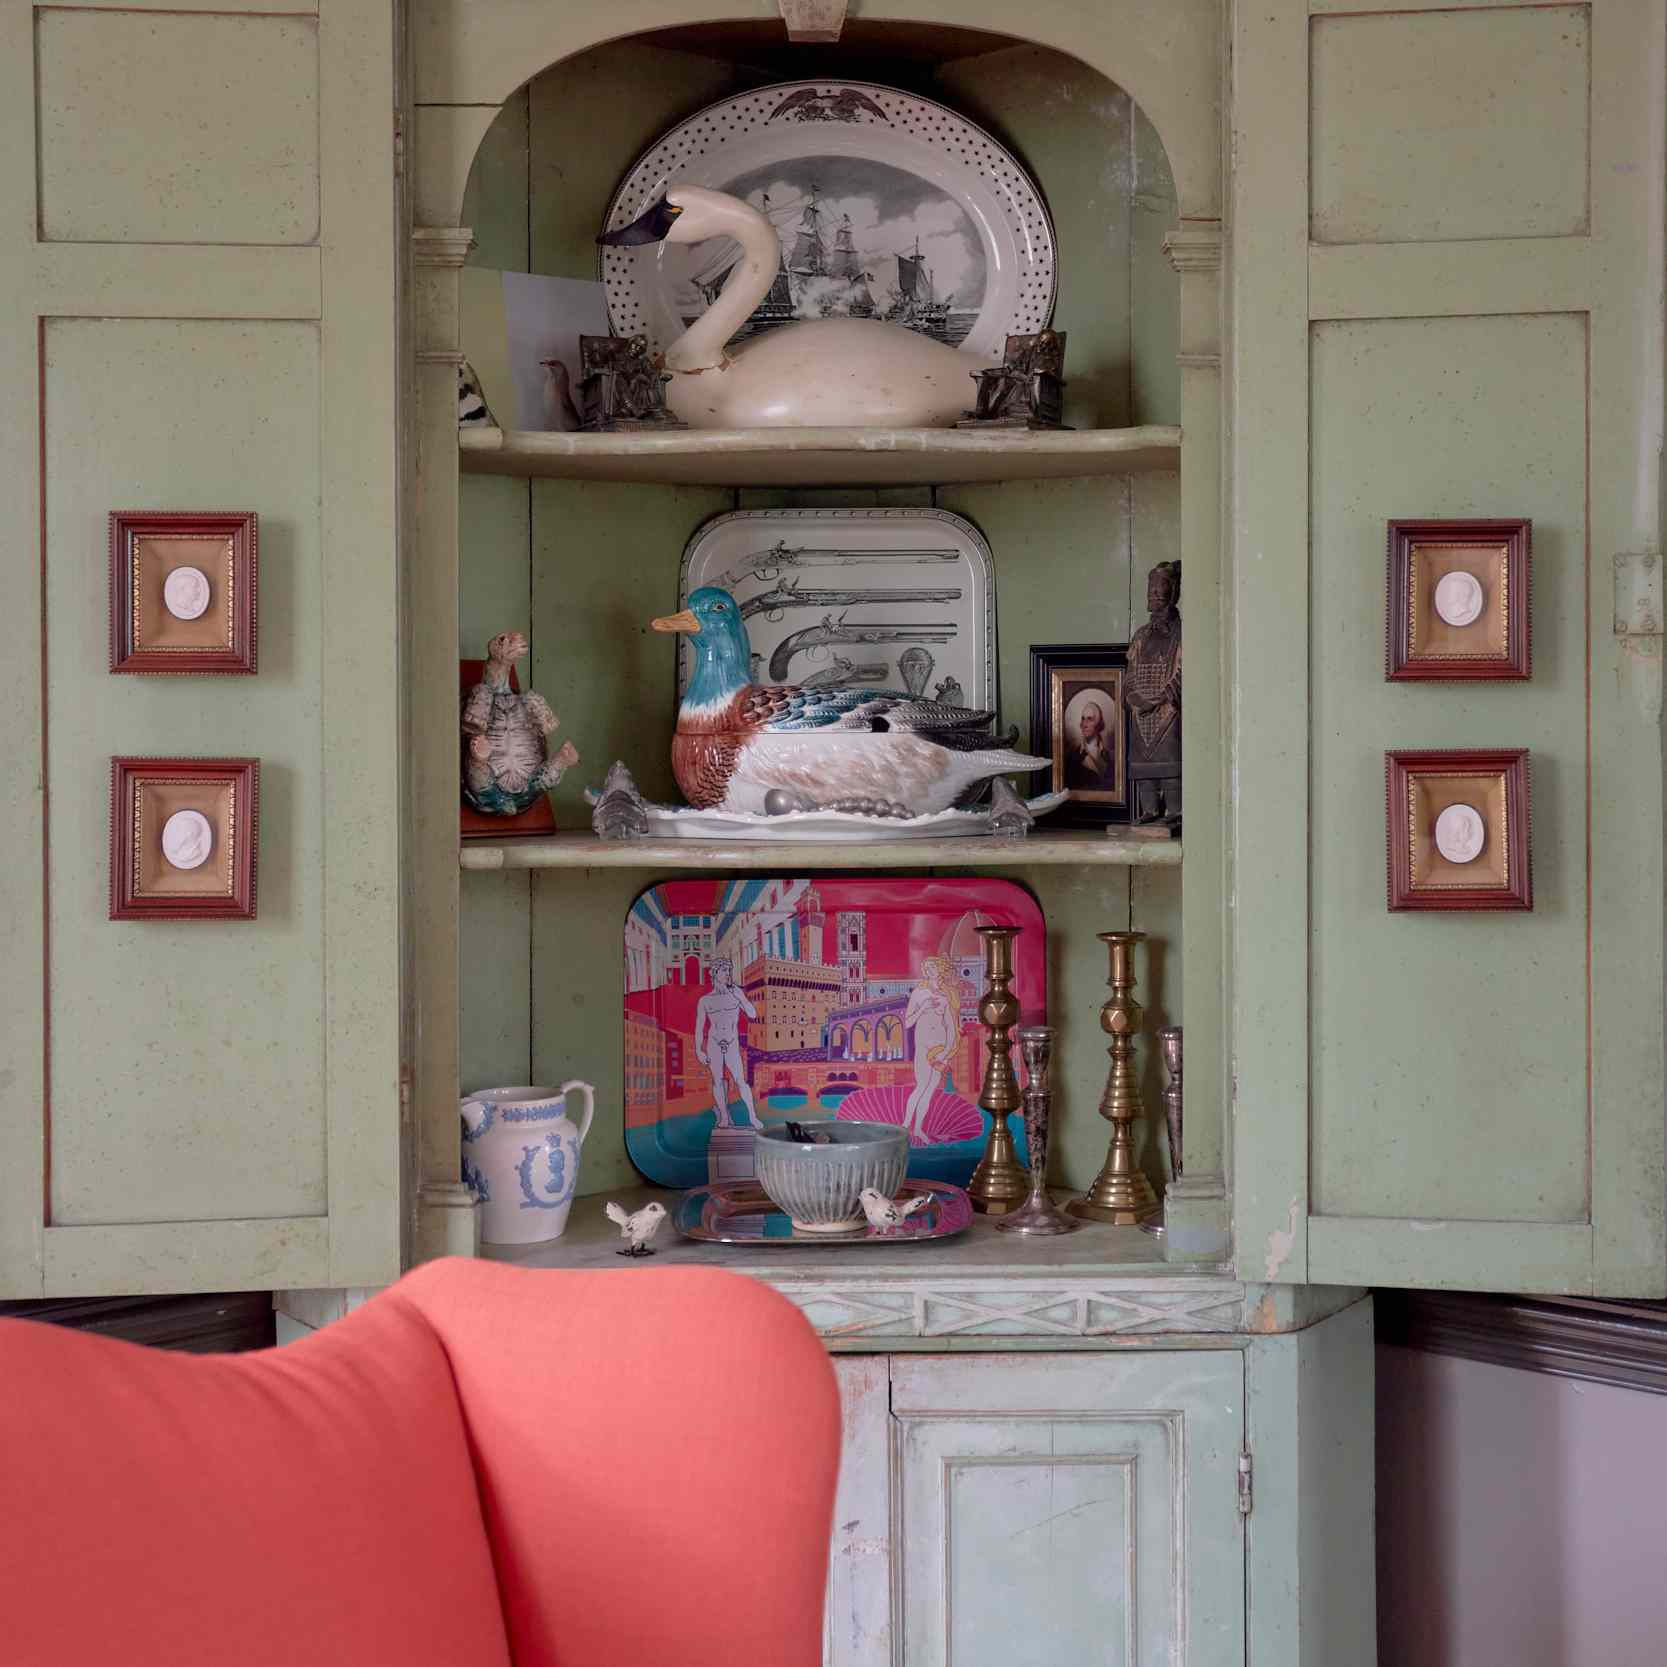 Mint green china cabinet with goose sculpture.